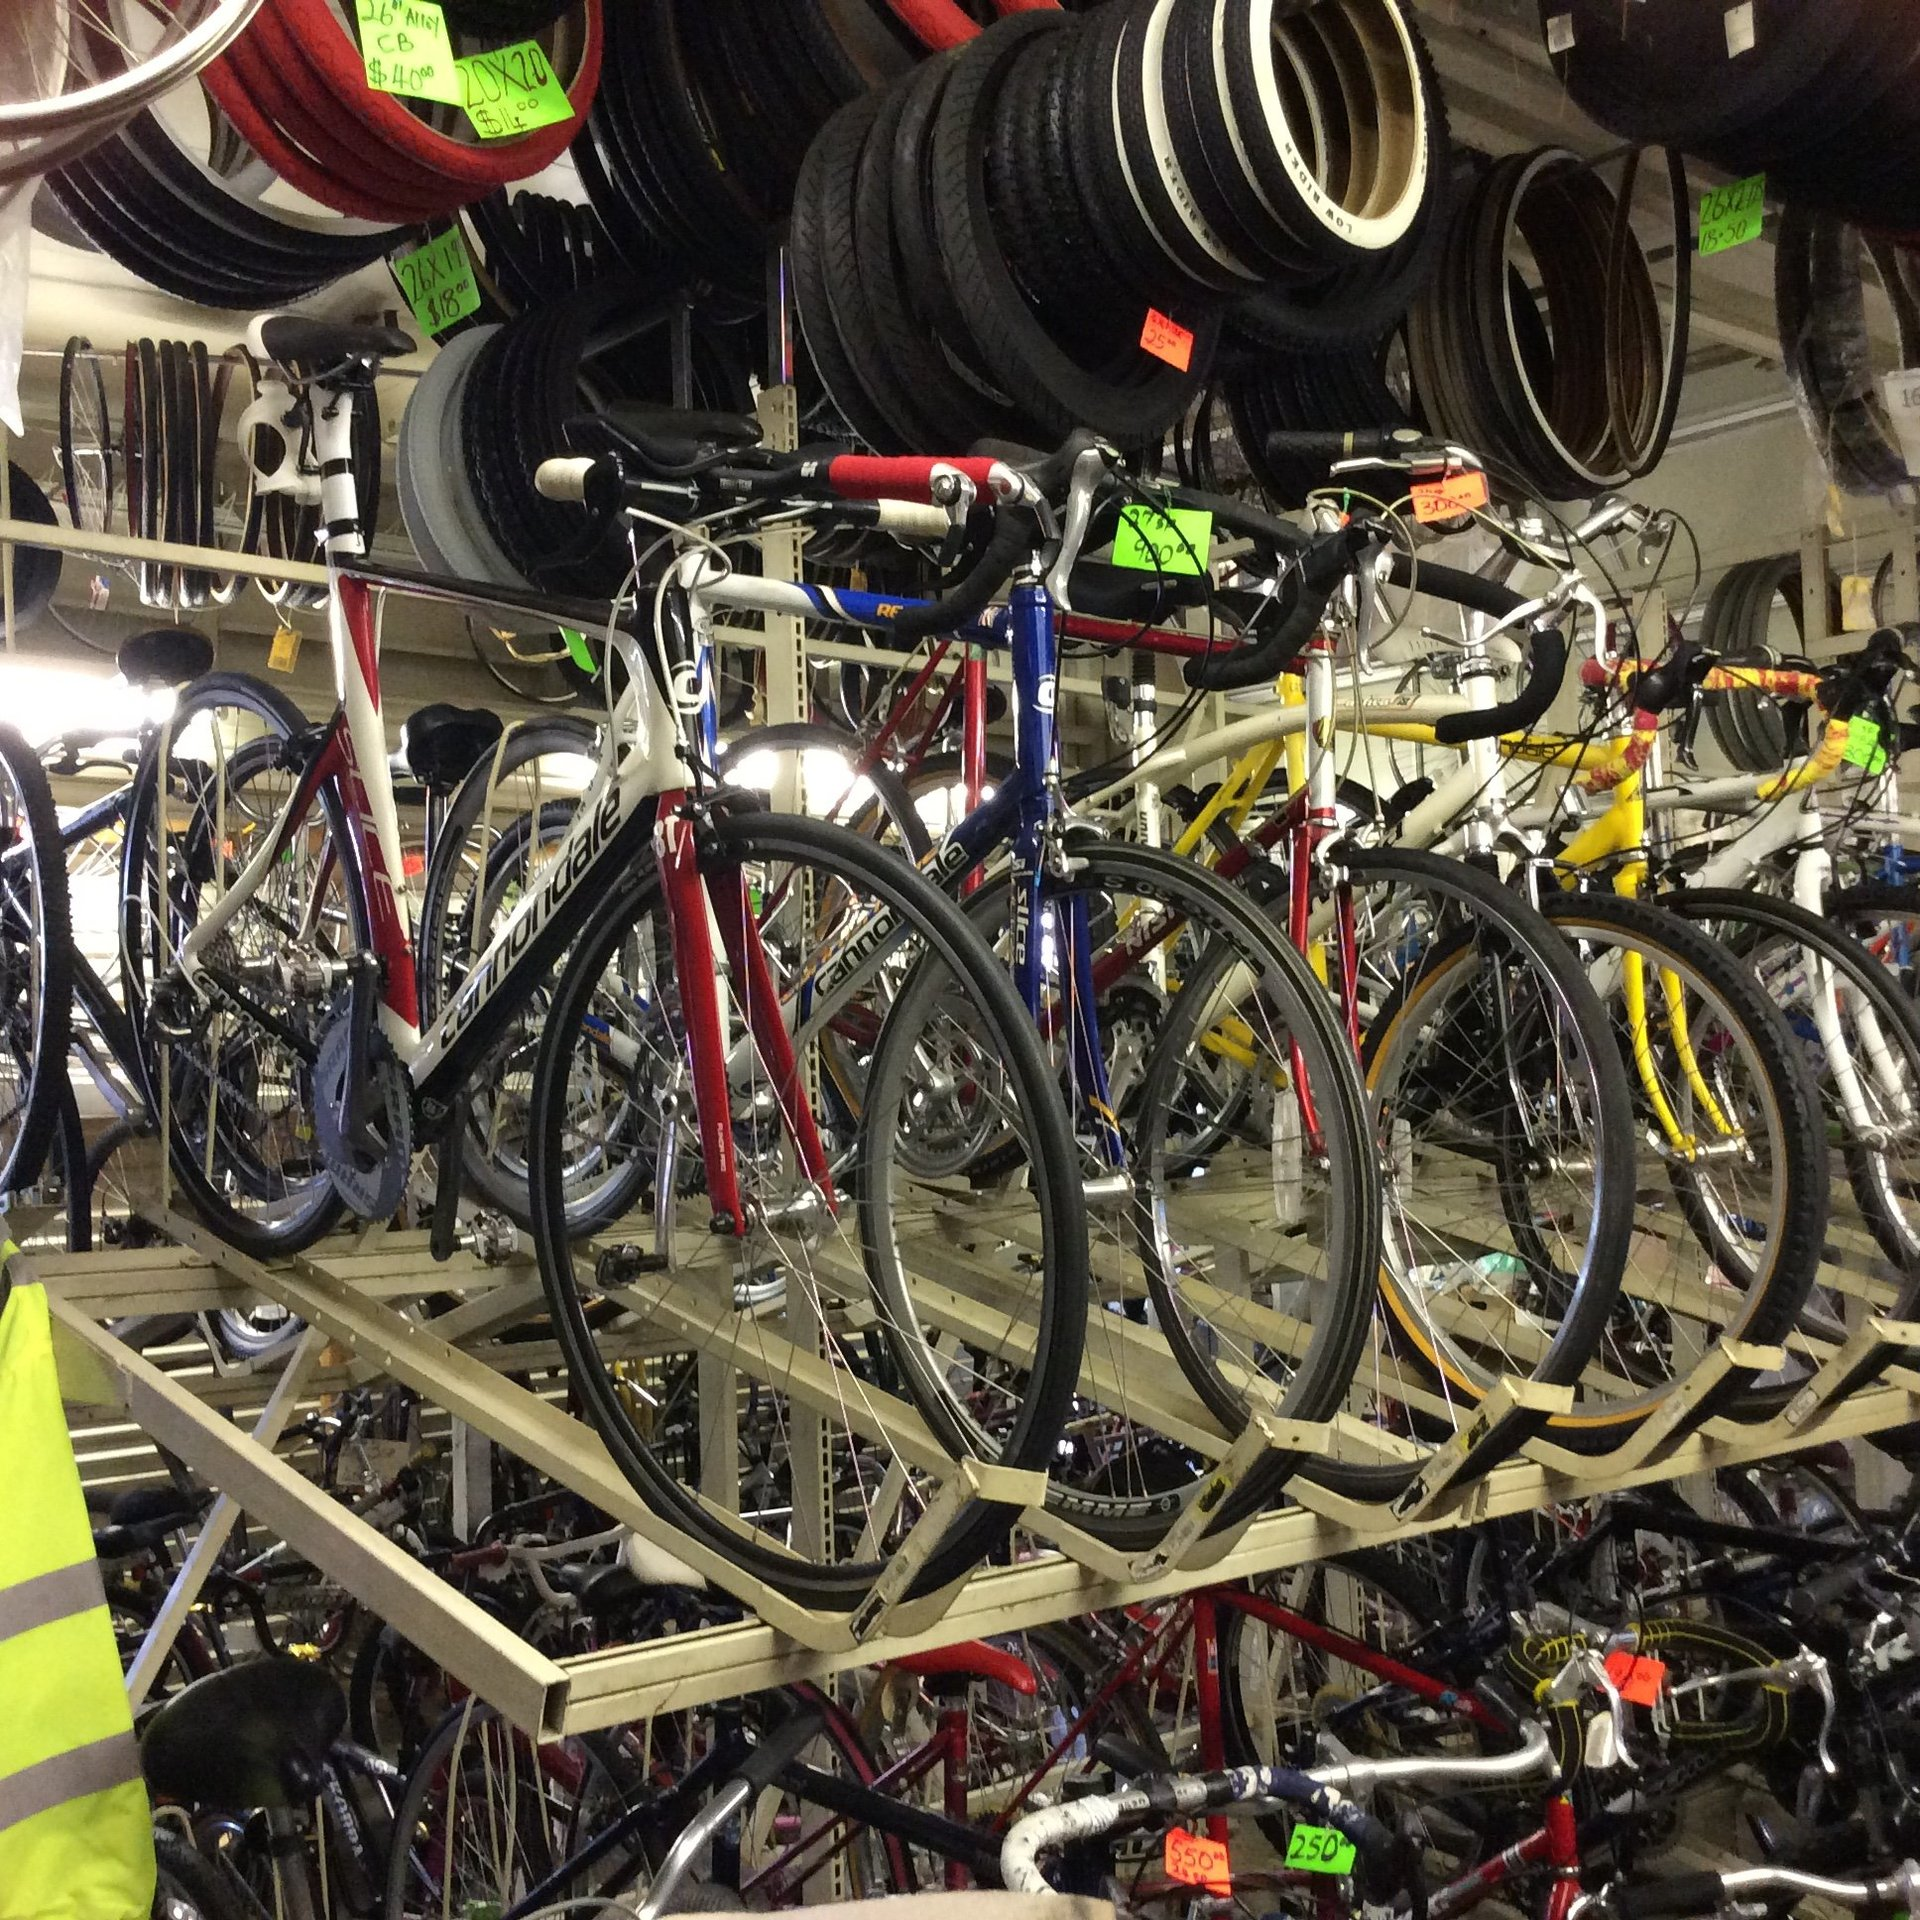 Bikes and parts